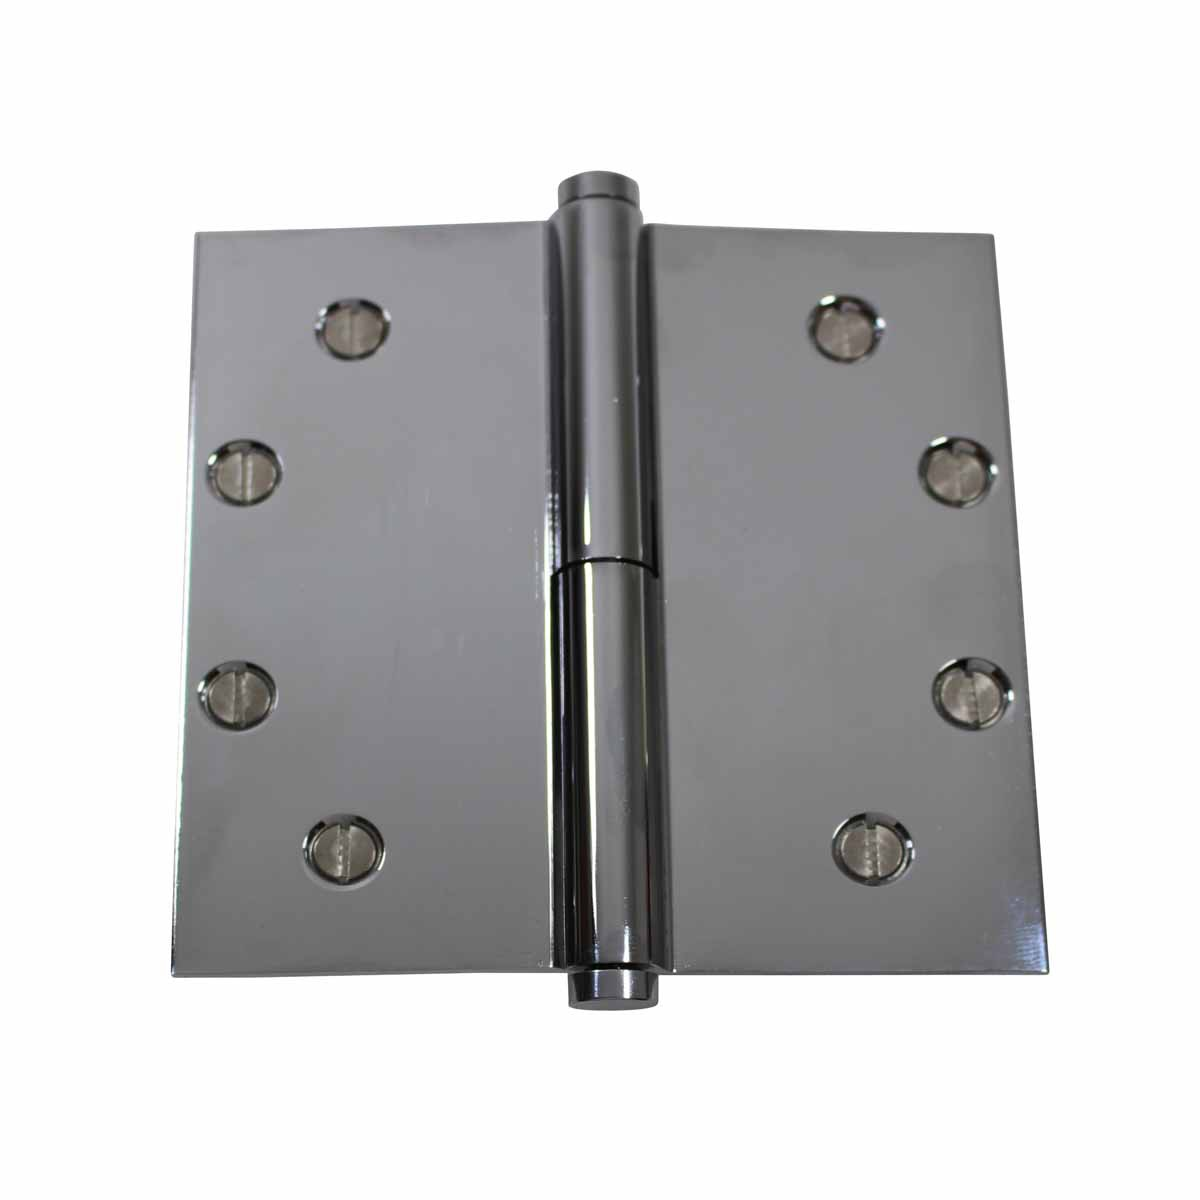 Lift Off Right Chrome Brass Door Hinge Coin Tip  sc 1 th 225 : chrome door hinges - pezcame.com